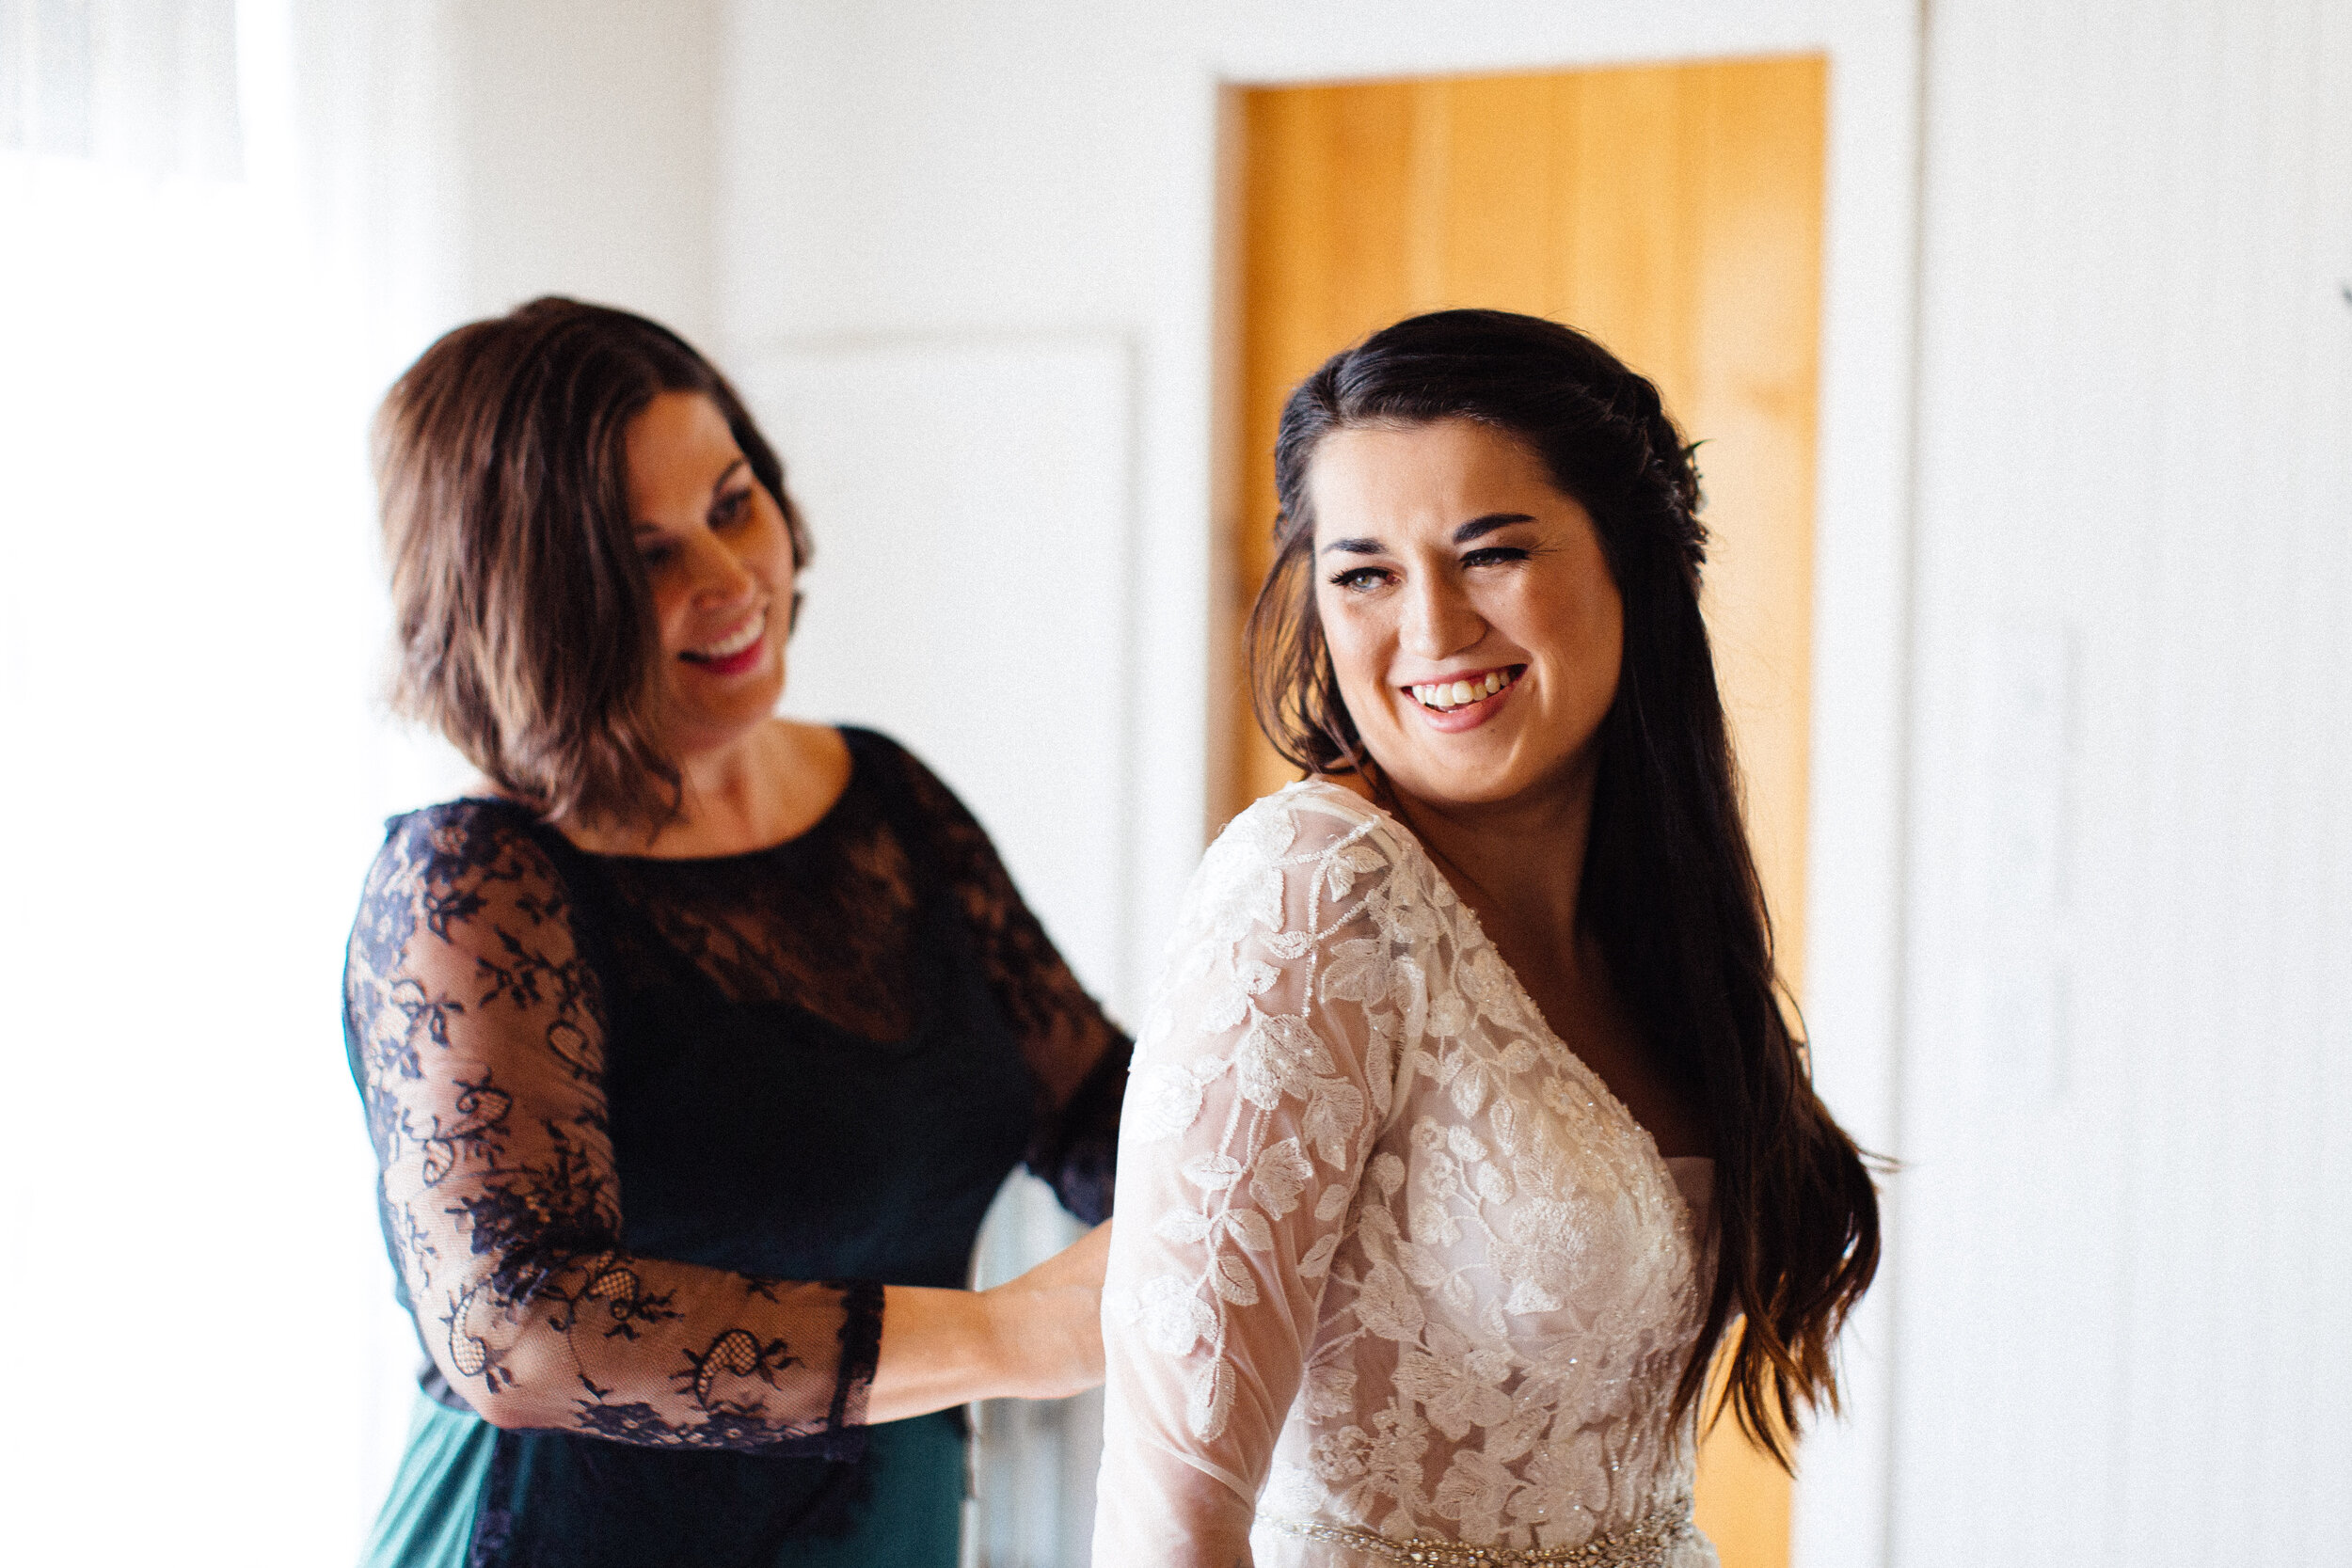 atlanta_wedding_photographers_georgia_same_sex_rustic_barn_farm_lesbian_weddings_inclusive_1095.jpg